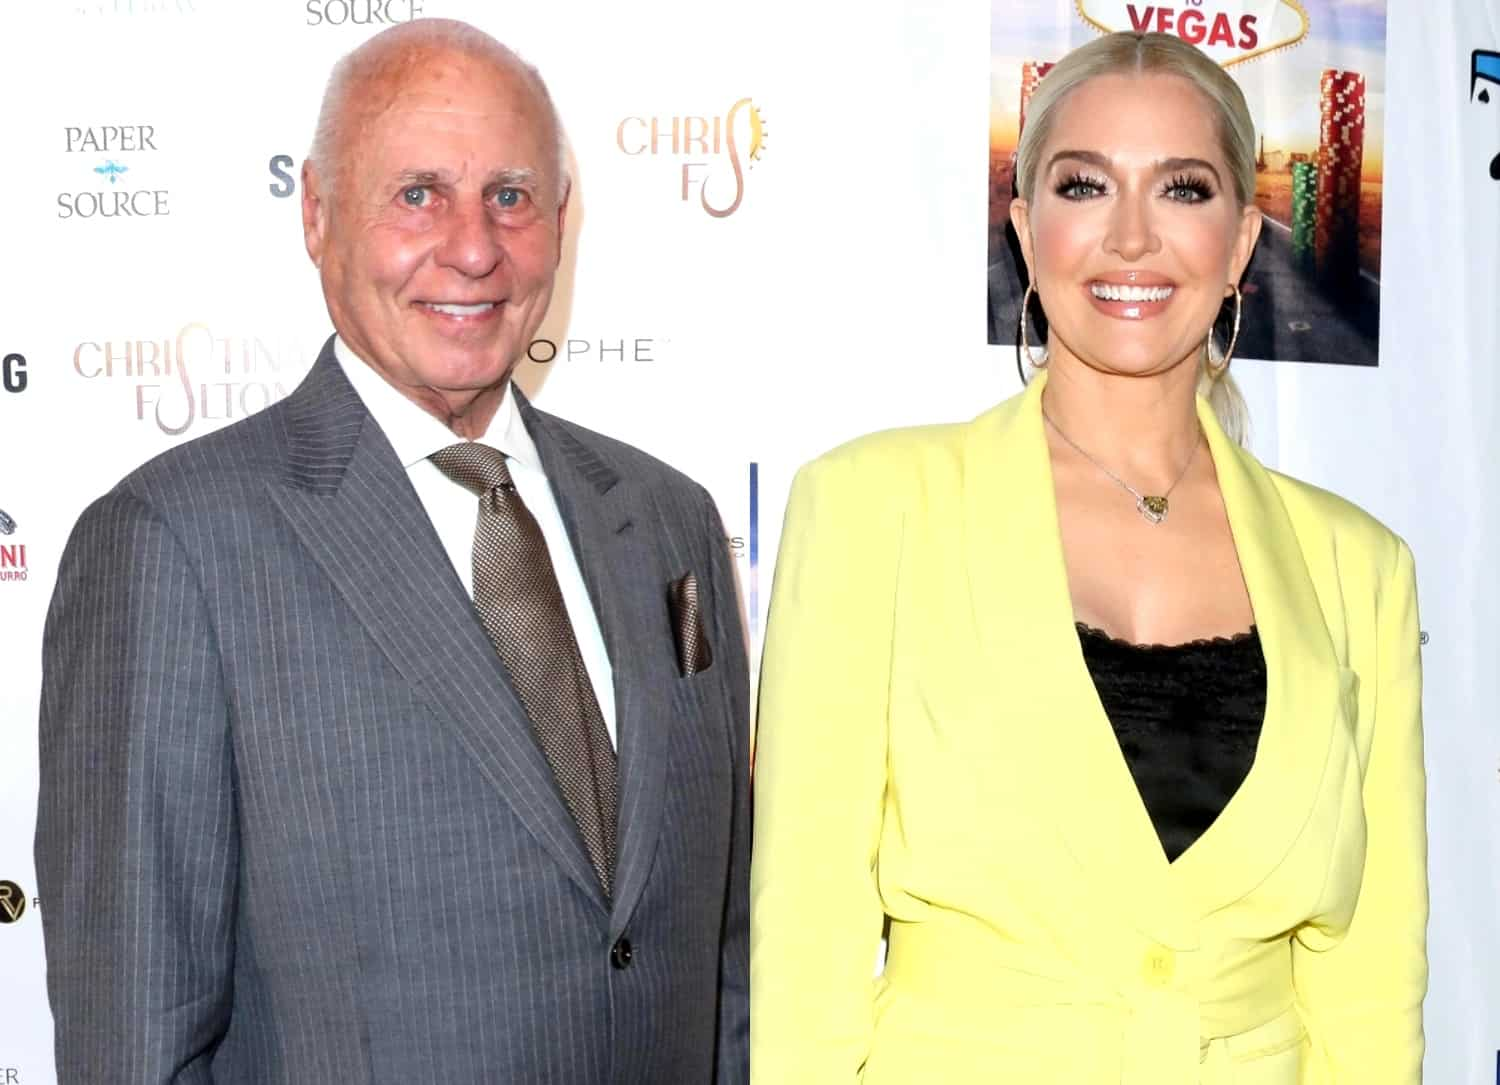 Thomas Girardi's Former Client Questions if He Sabotaged Her Case to Get Erika Jayne on RHOBH as She Alleges He Conned Her Into Bad Legal Decision Before Dropping Her Case Against NBCUniversal